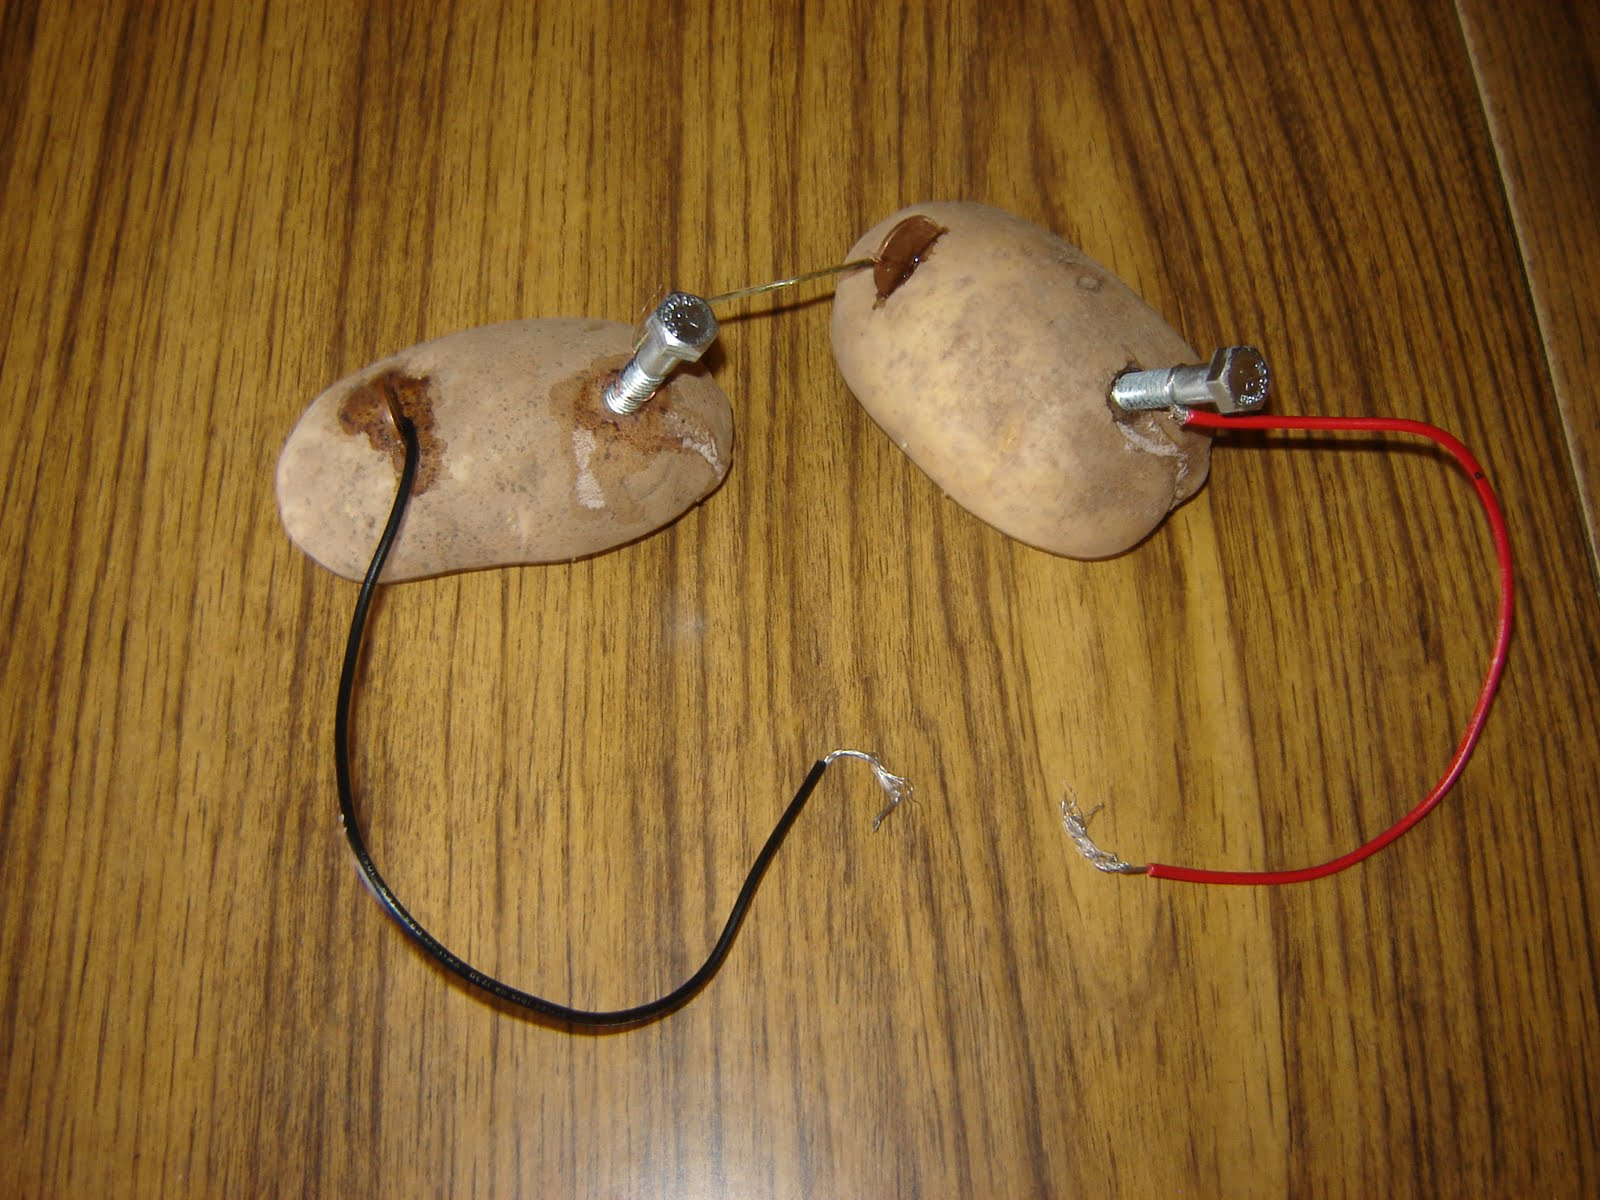 Potato Battery Experiment with Hypothesis and Conclusion